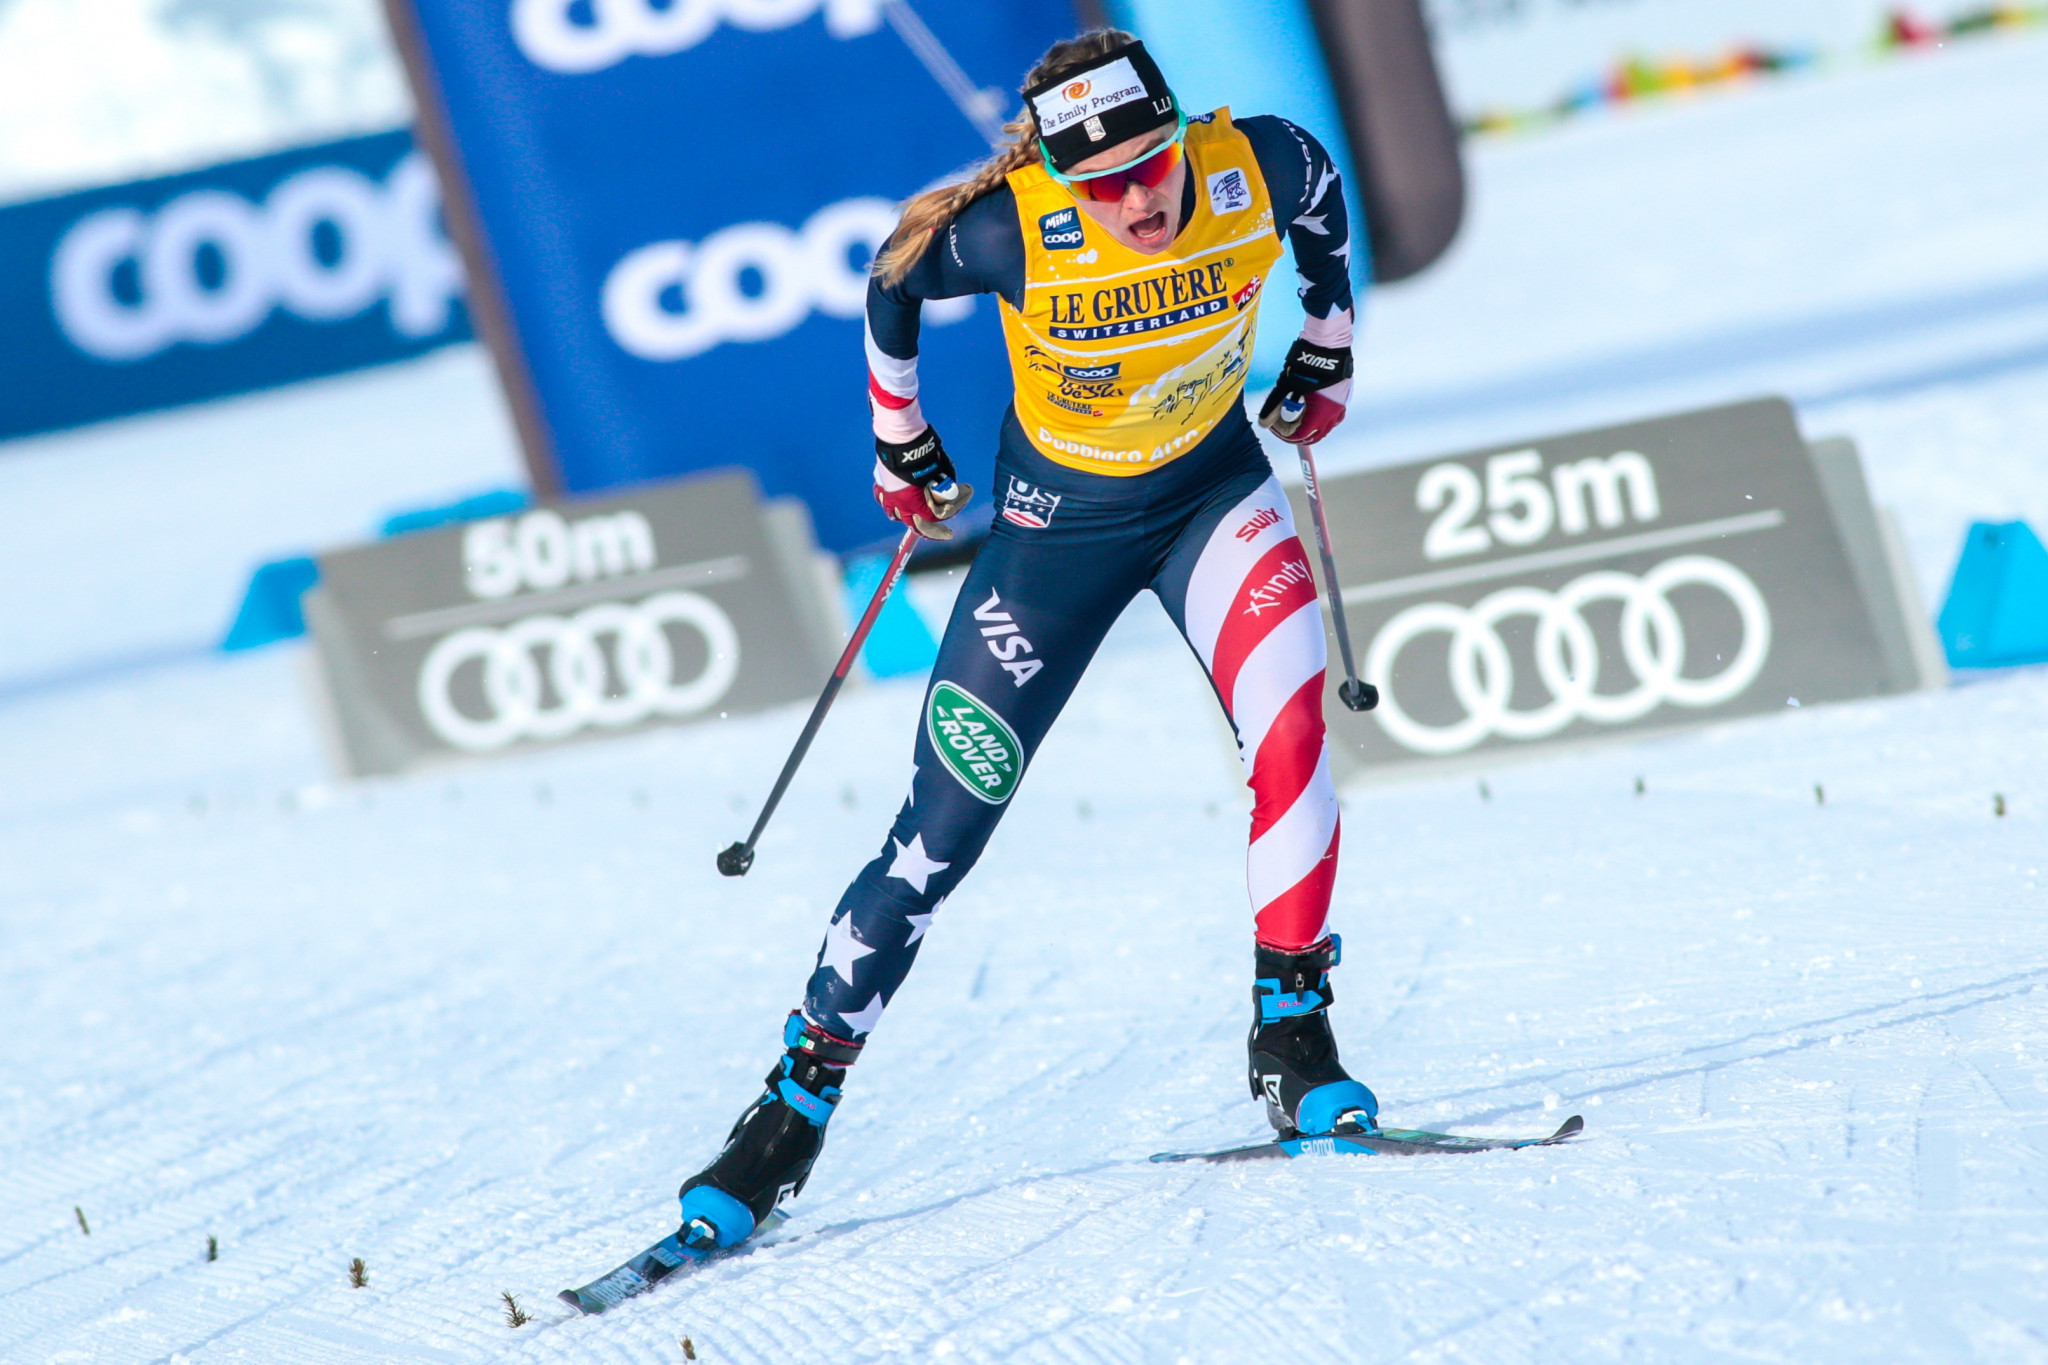 Jessie Diggins of the United States has already won the women's overall World Cup title ©Getty Images